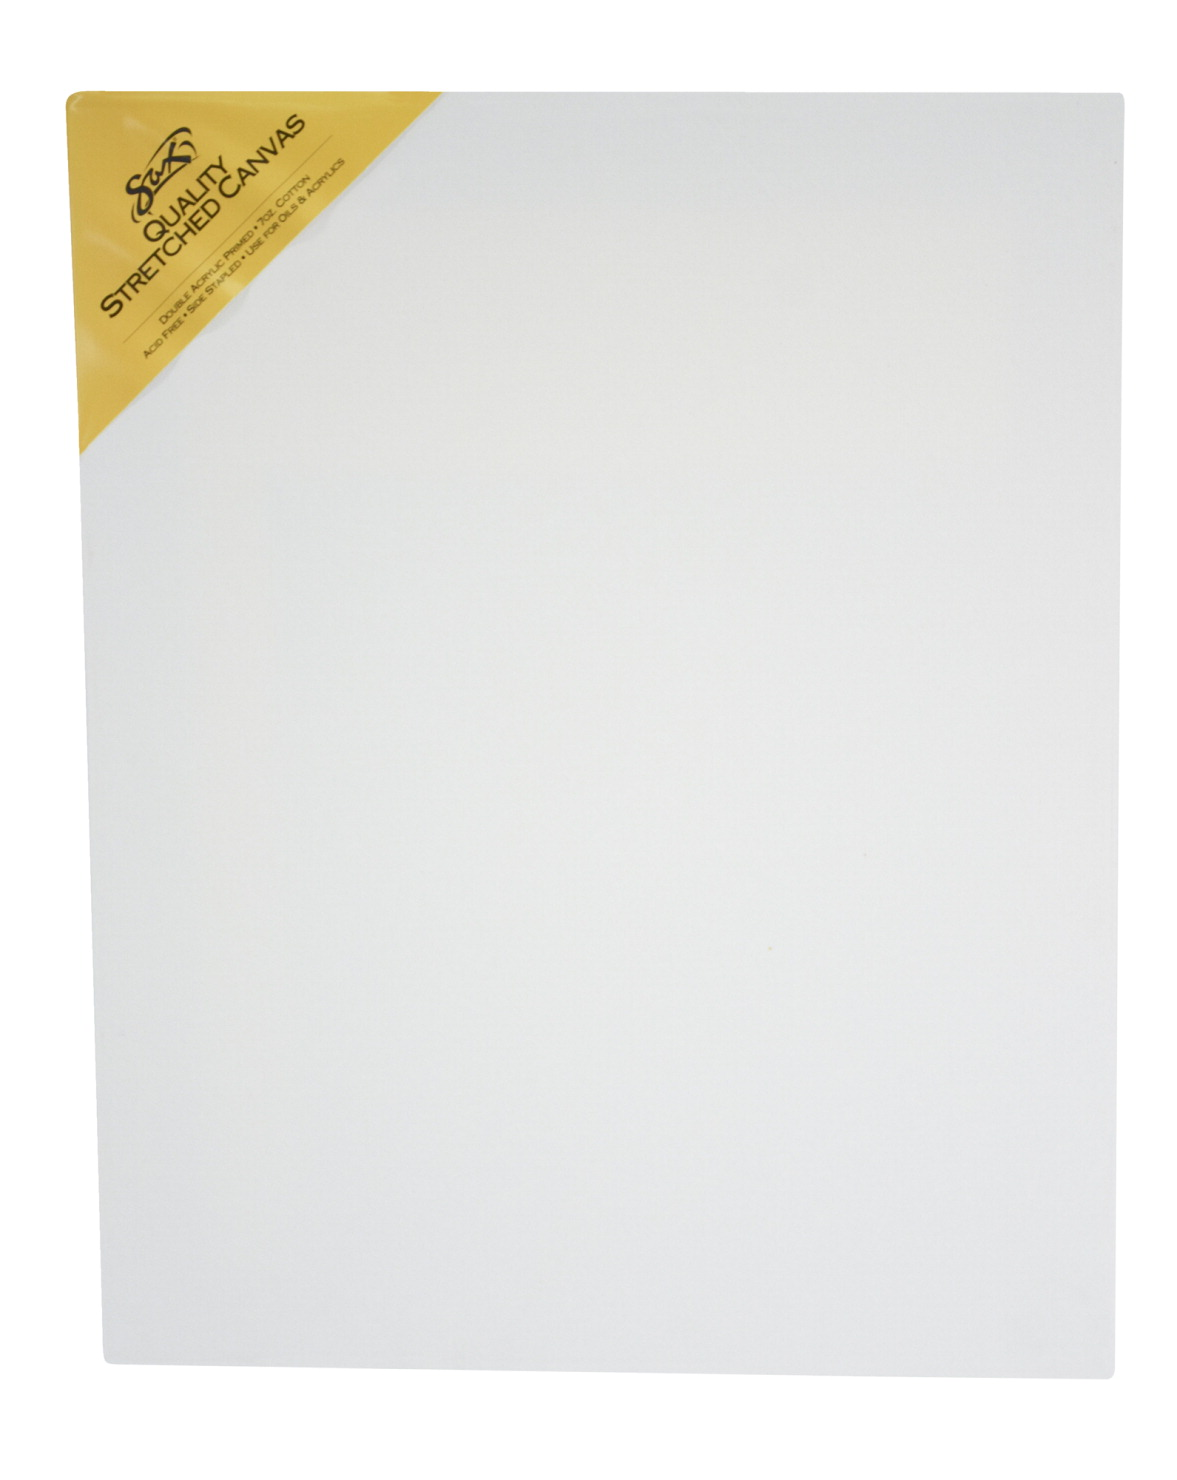 Sax Quality Stretched Canvas, Double Acrylic Primed, 16 x 20 Inches, White